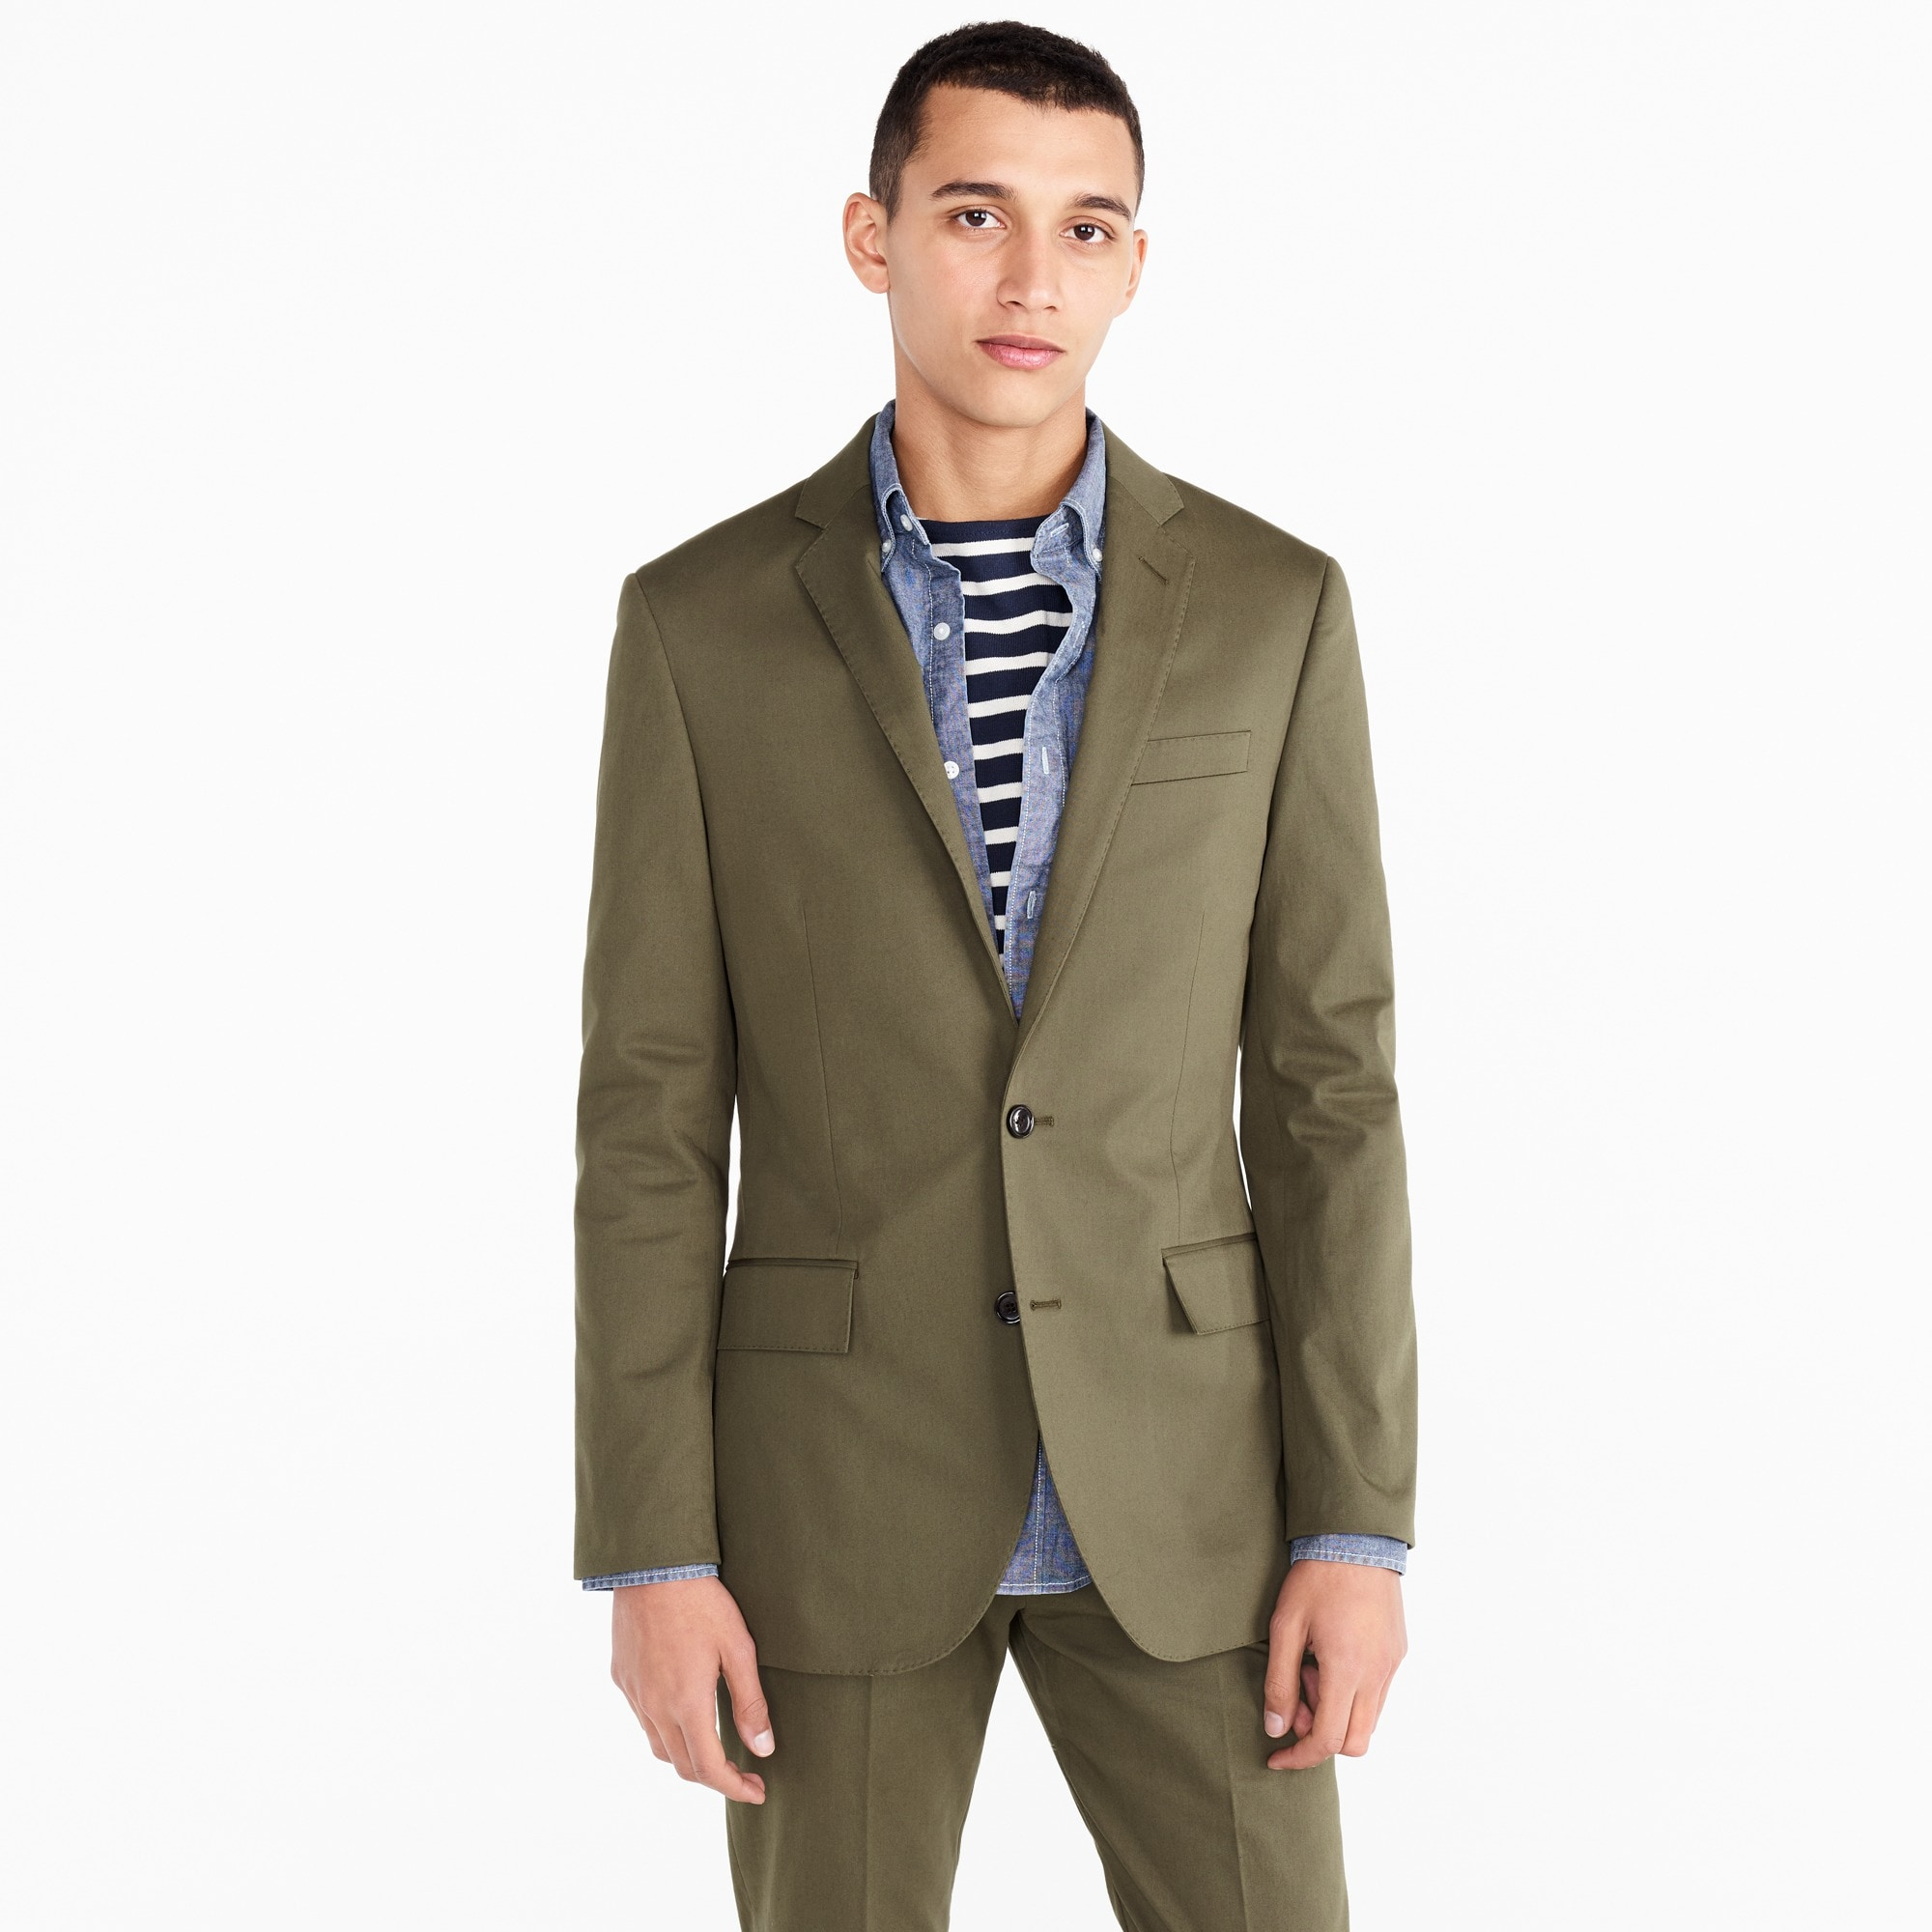 Ludlow Slim-fit suit jacket in Italian stretch chino